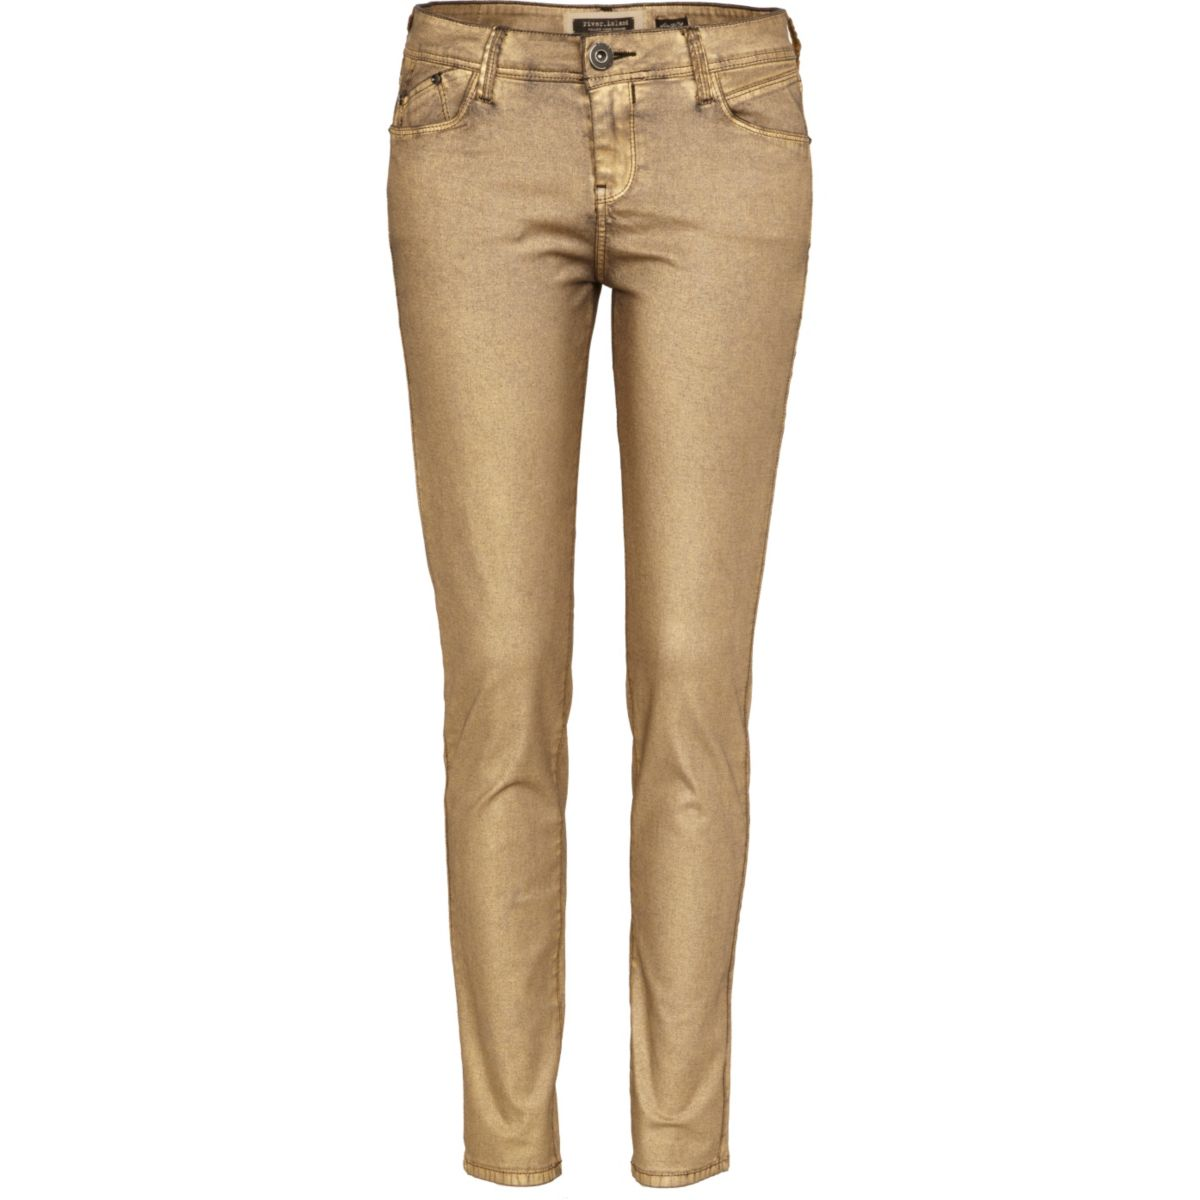 Shop eBay for great deals on Skinny Metallic Pants for Women. You'll find new or used products in Skinny Metallic Pants for Women on eBay. Free shipping on selected items.